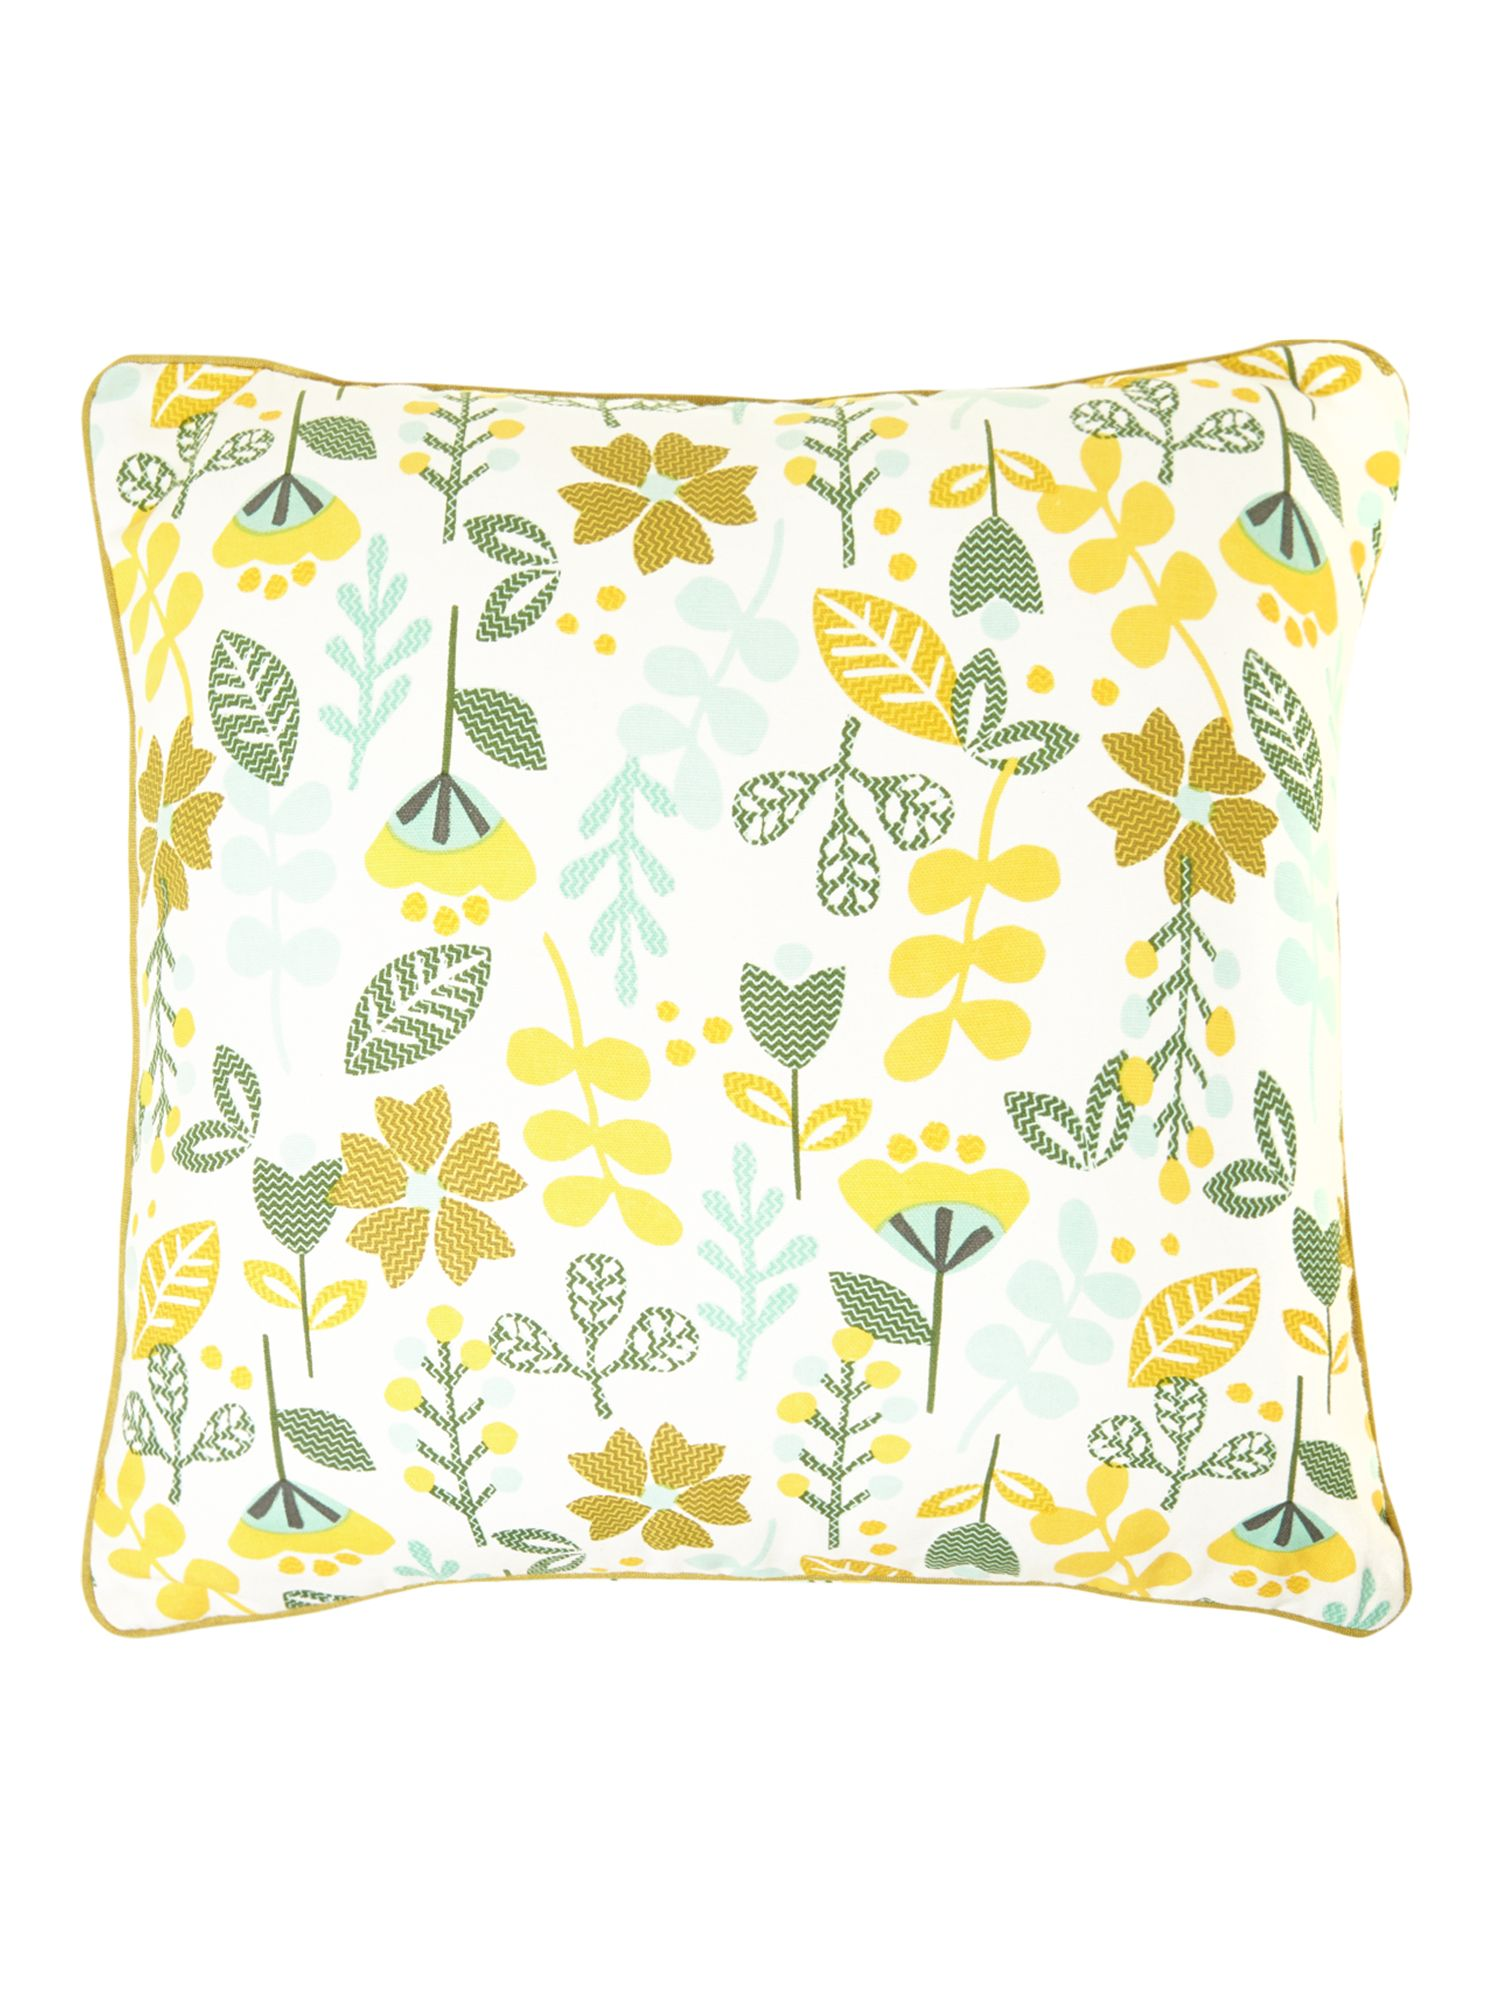 Urban Explorer Leaf print design print cushion